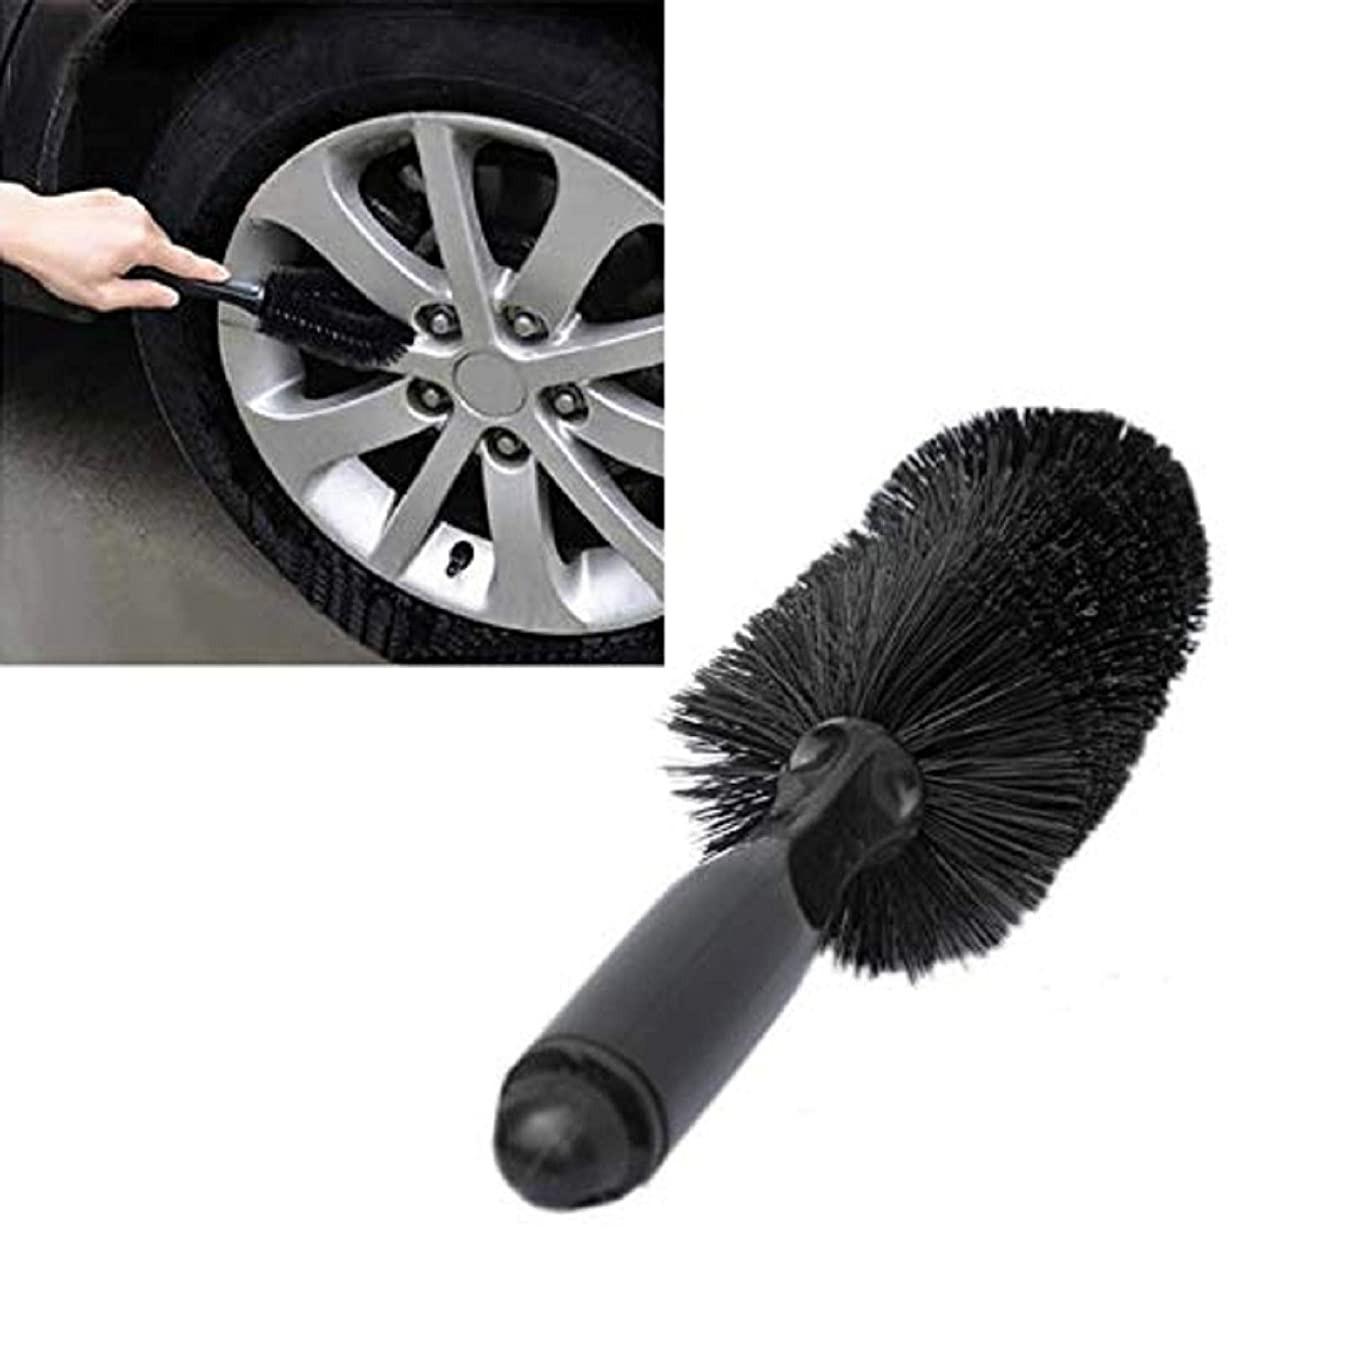 m·kvfa Car Vehicle Motorcycle Wheel Tire Rim Scrub Brush Washing Cleaning Tool Cleaner Washing Tool Wheel Washing